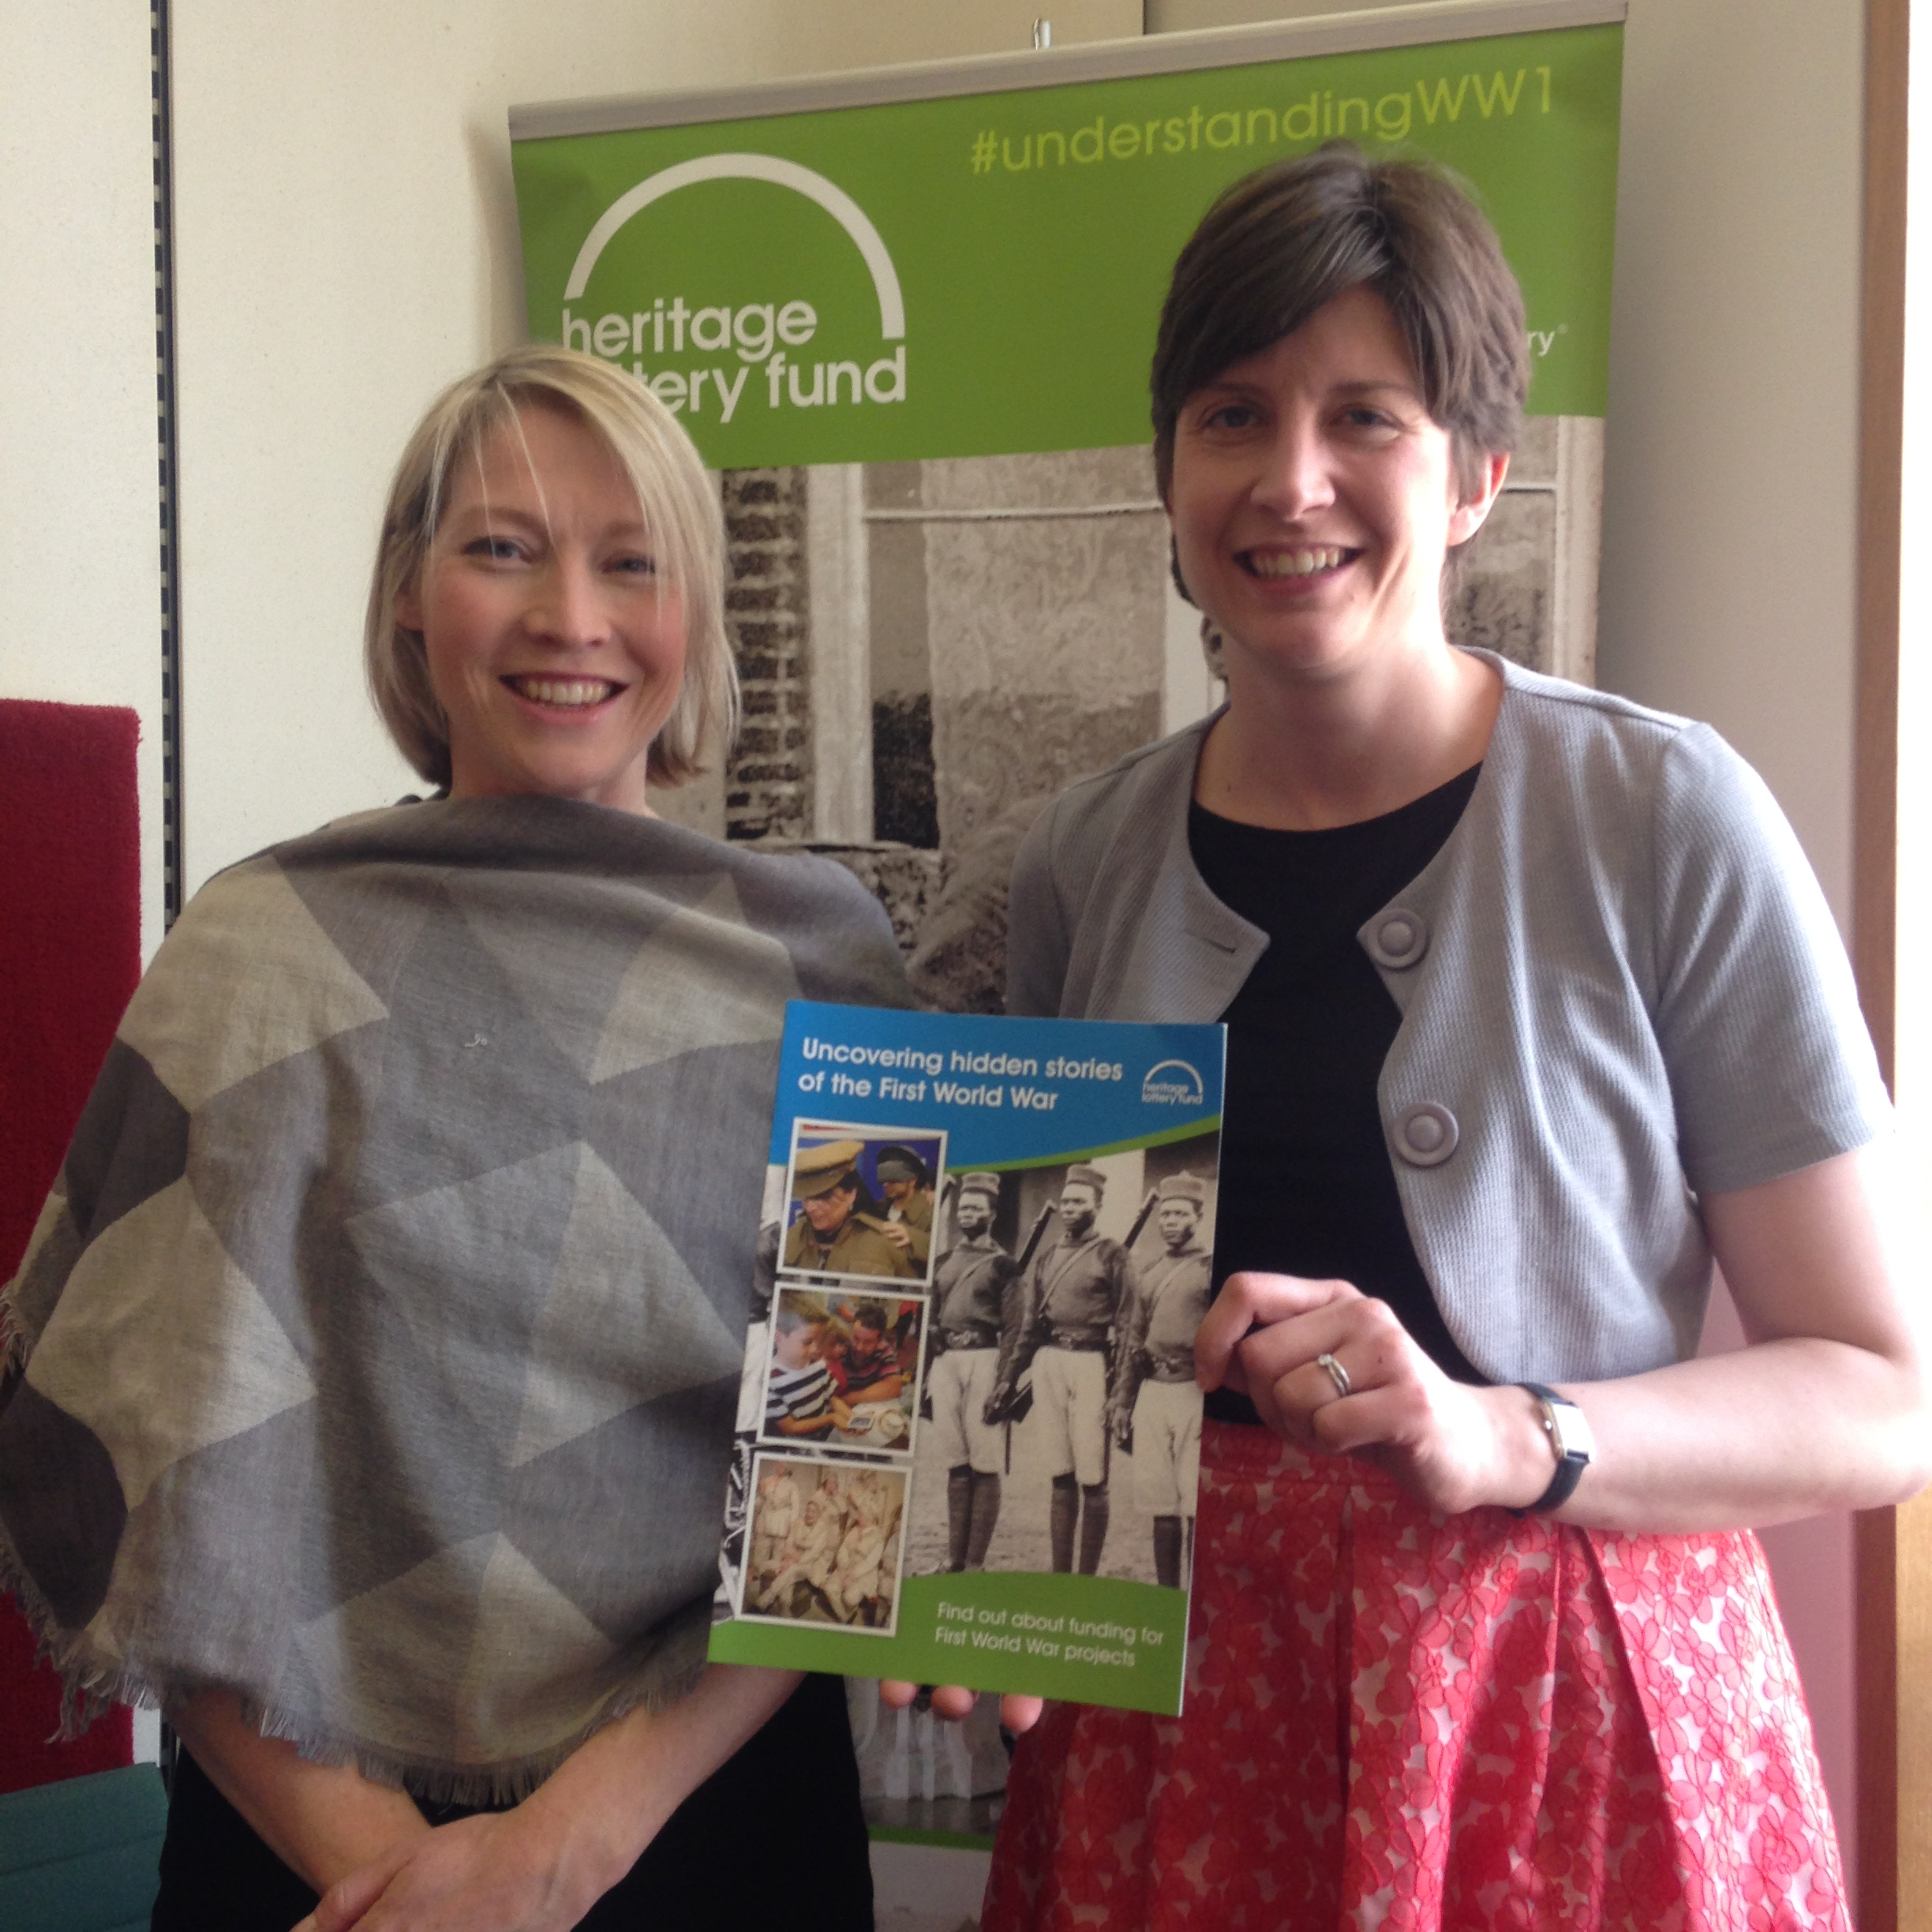 Alison Thewliss MP urges Glasgow communities to apply for HLF funding to mark the Centenary of the First World War